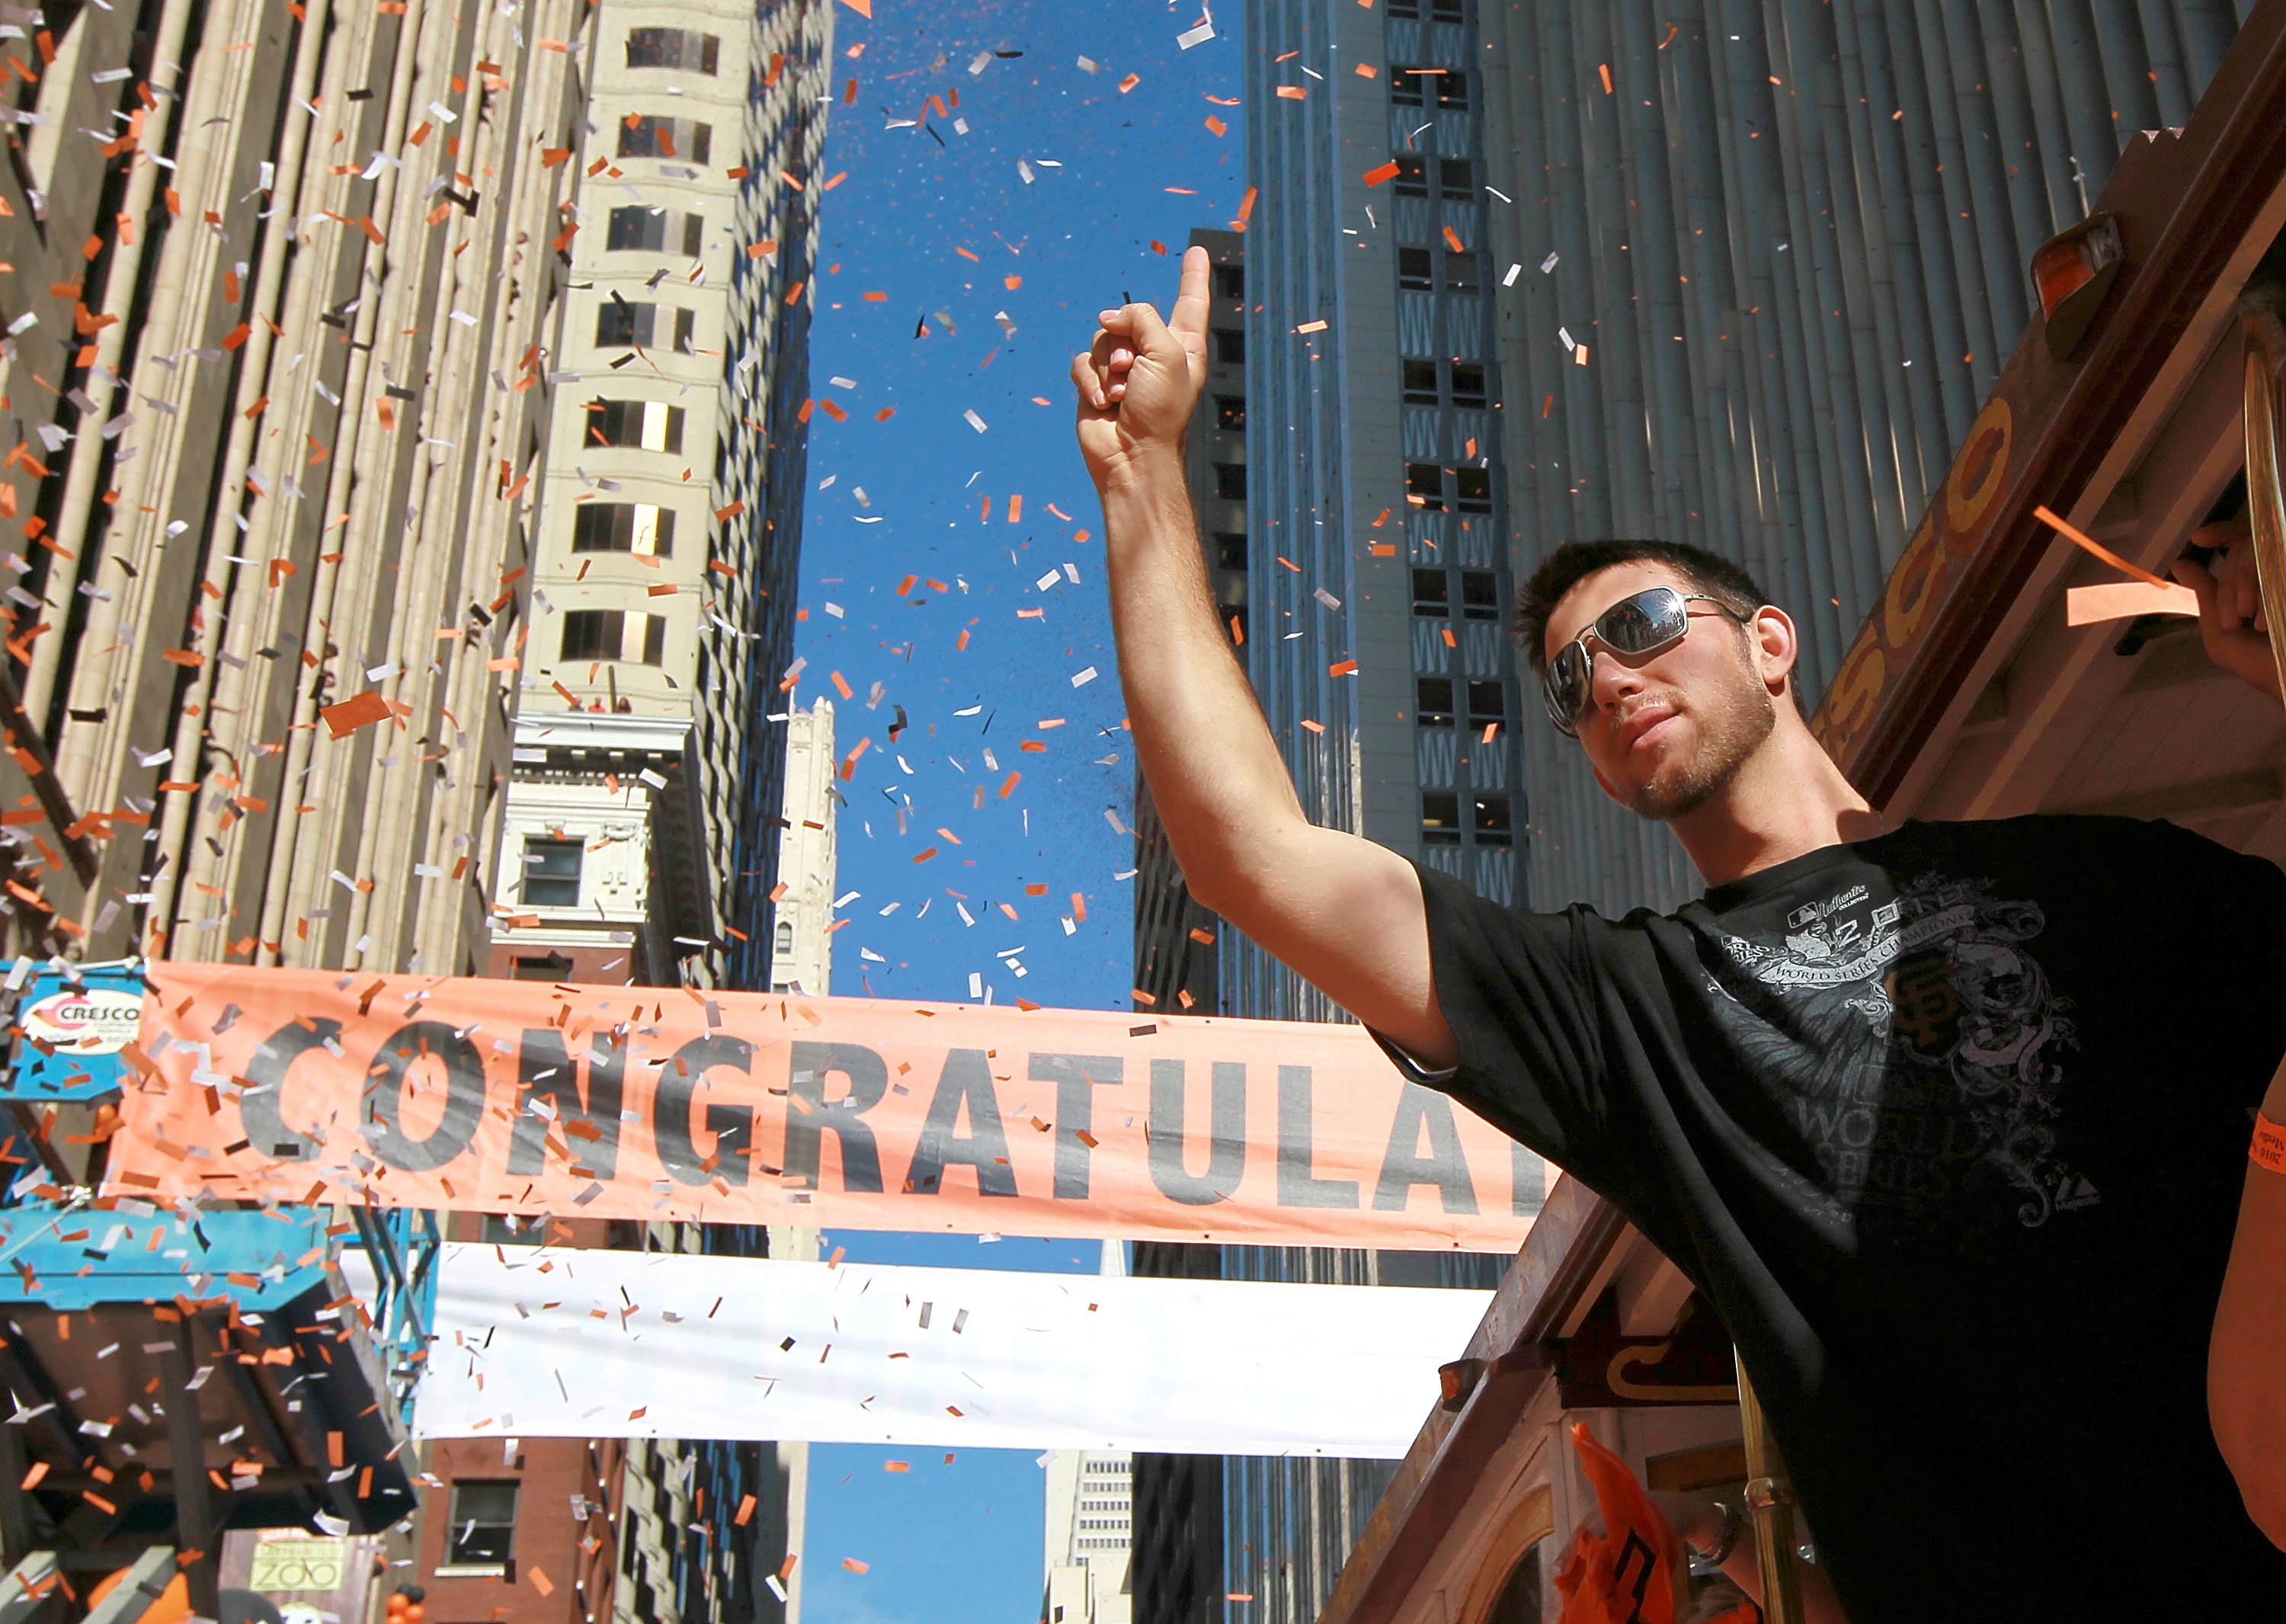 SAN FRANCISCO - NOVEMBER 03:  Madison Bumgarner of the San Francisco Giants celebrates during the Giants' vicotry parade on November 3, 2010 in San Francisco, California. Thousands of Giants fans lined the streets of San Francisco to watch the San Francis